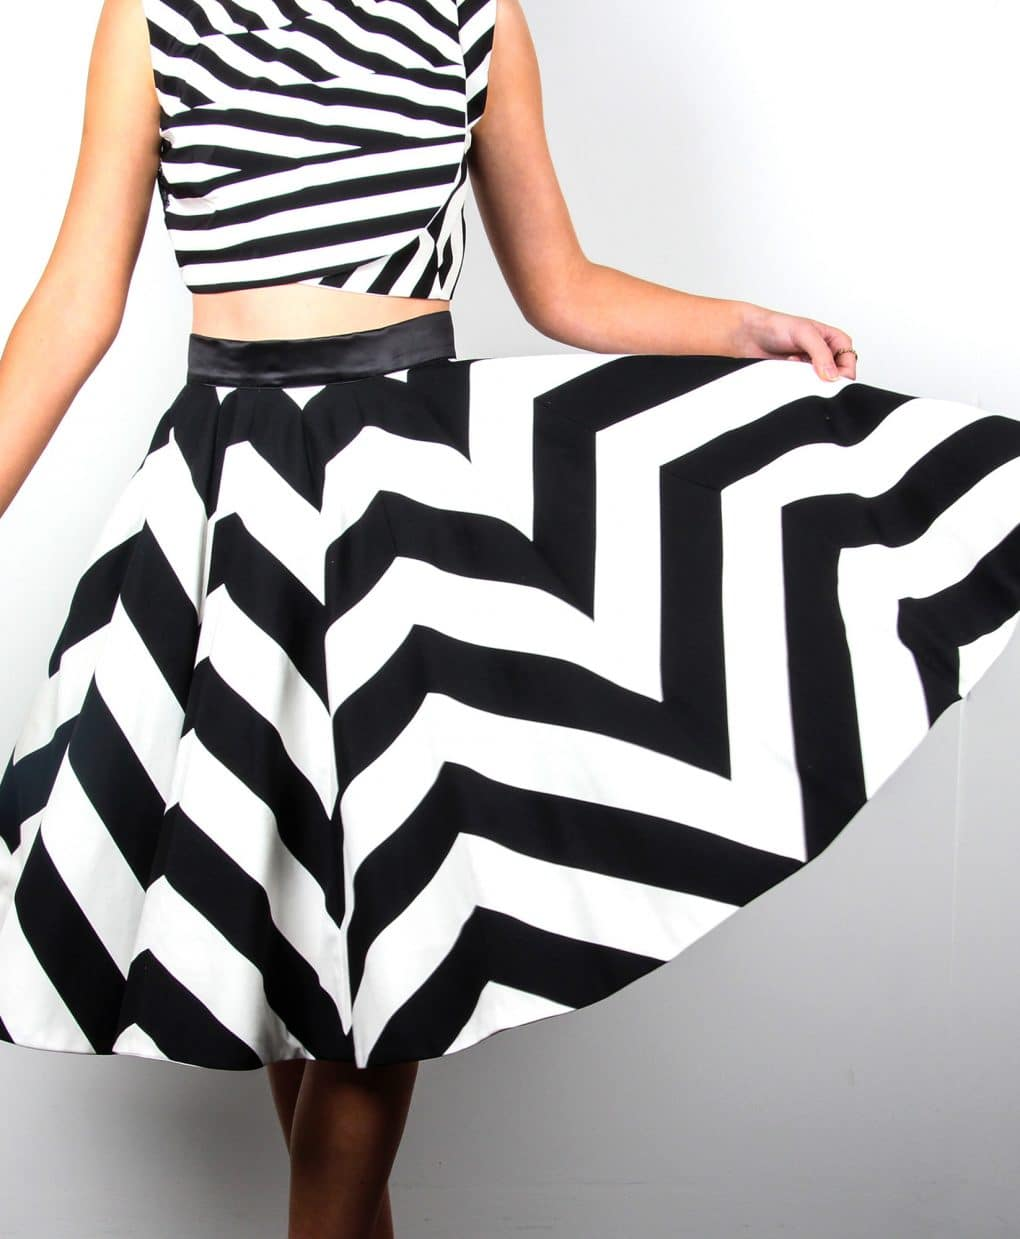 Chevron-Black-and-White-Stripe-Skirt-Atalier